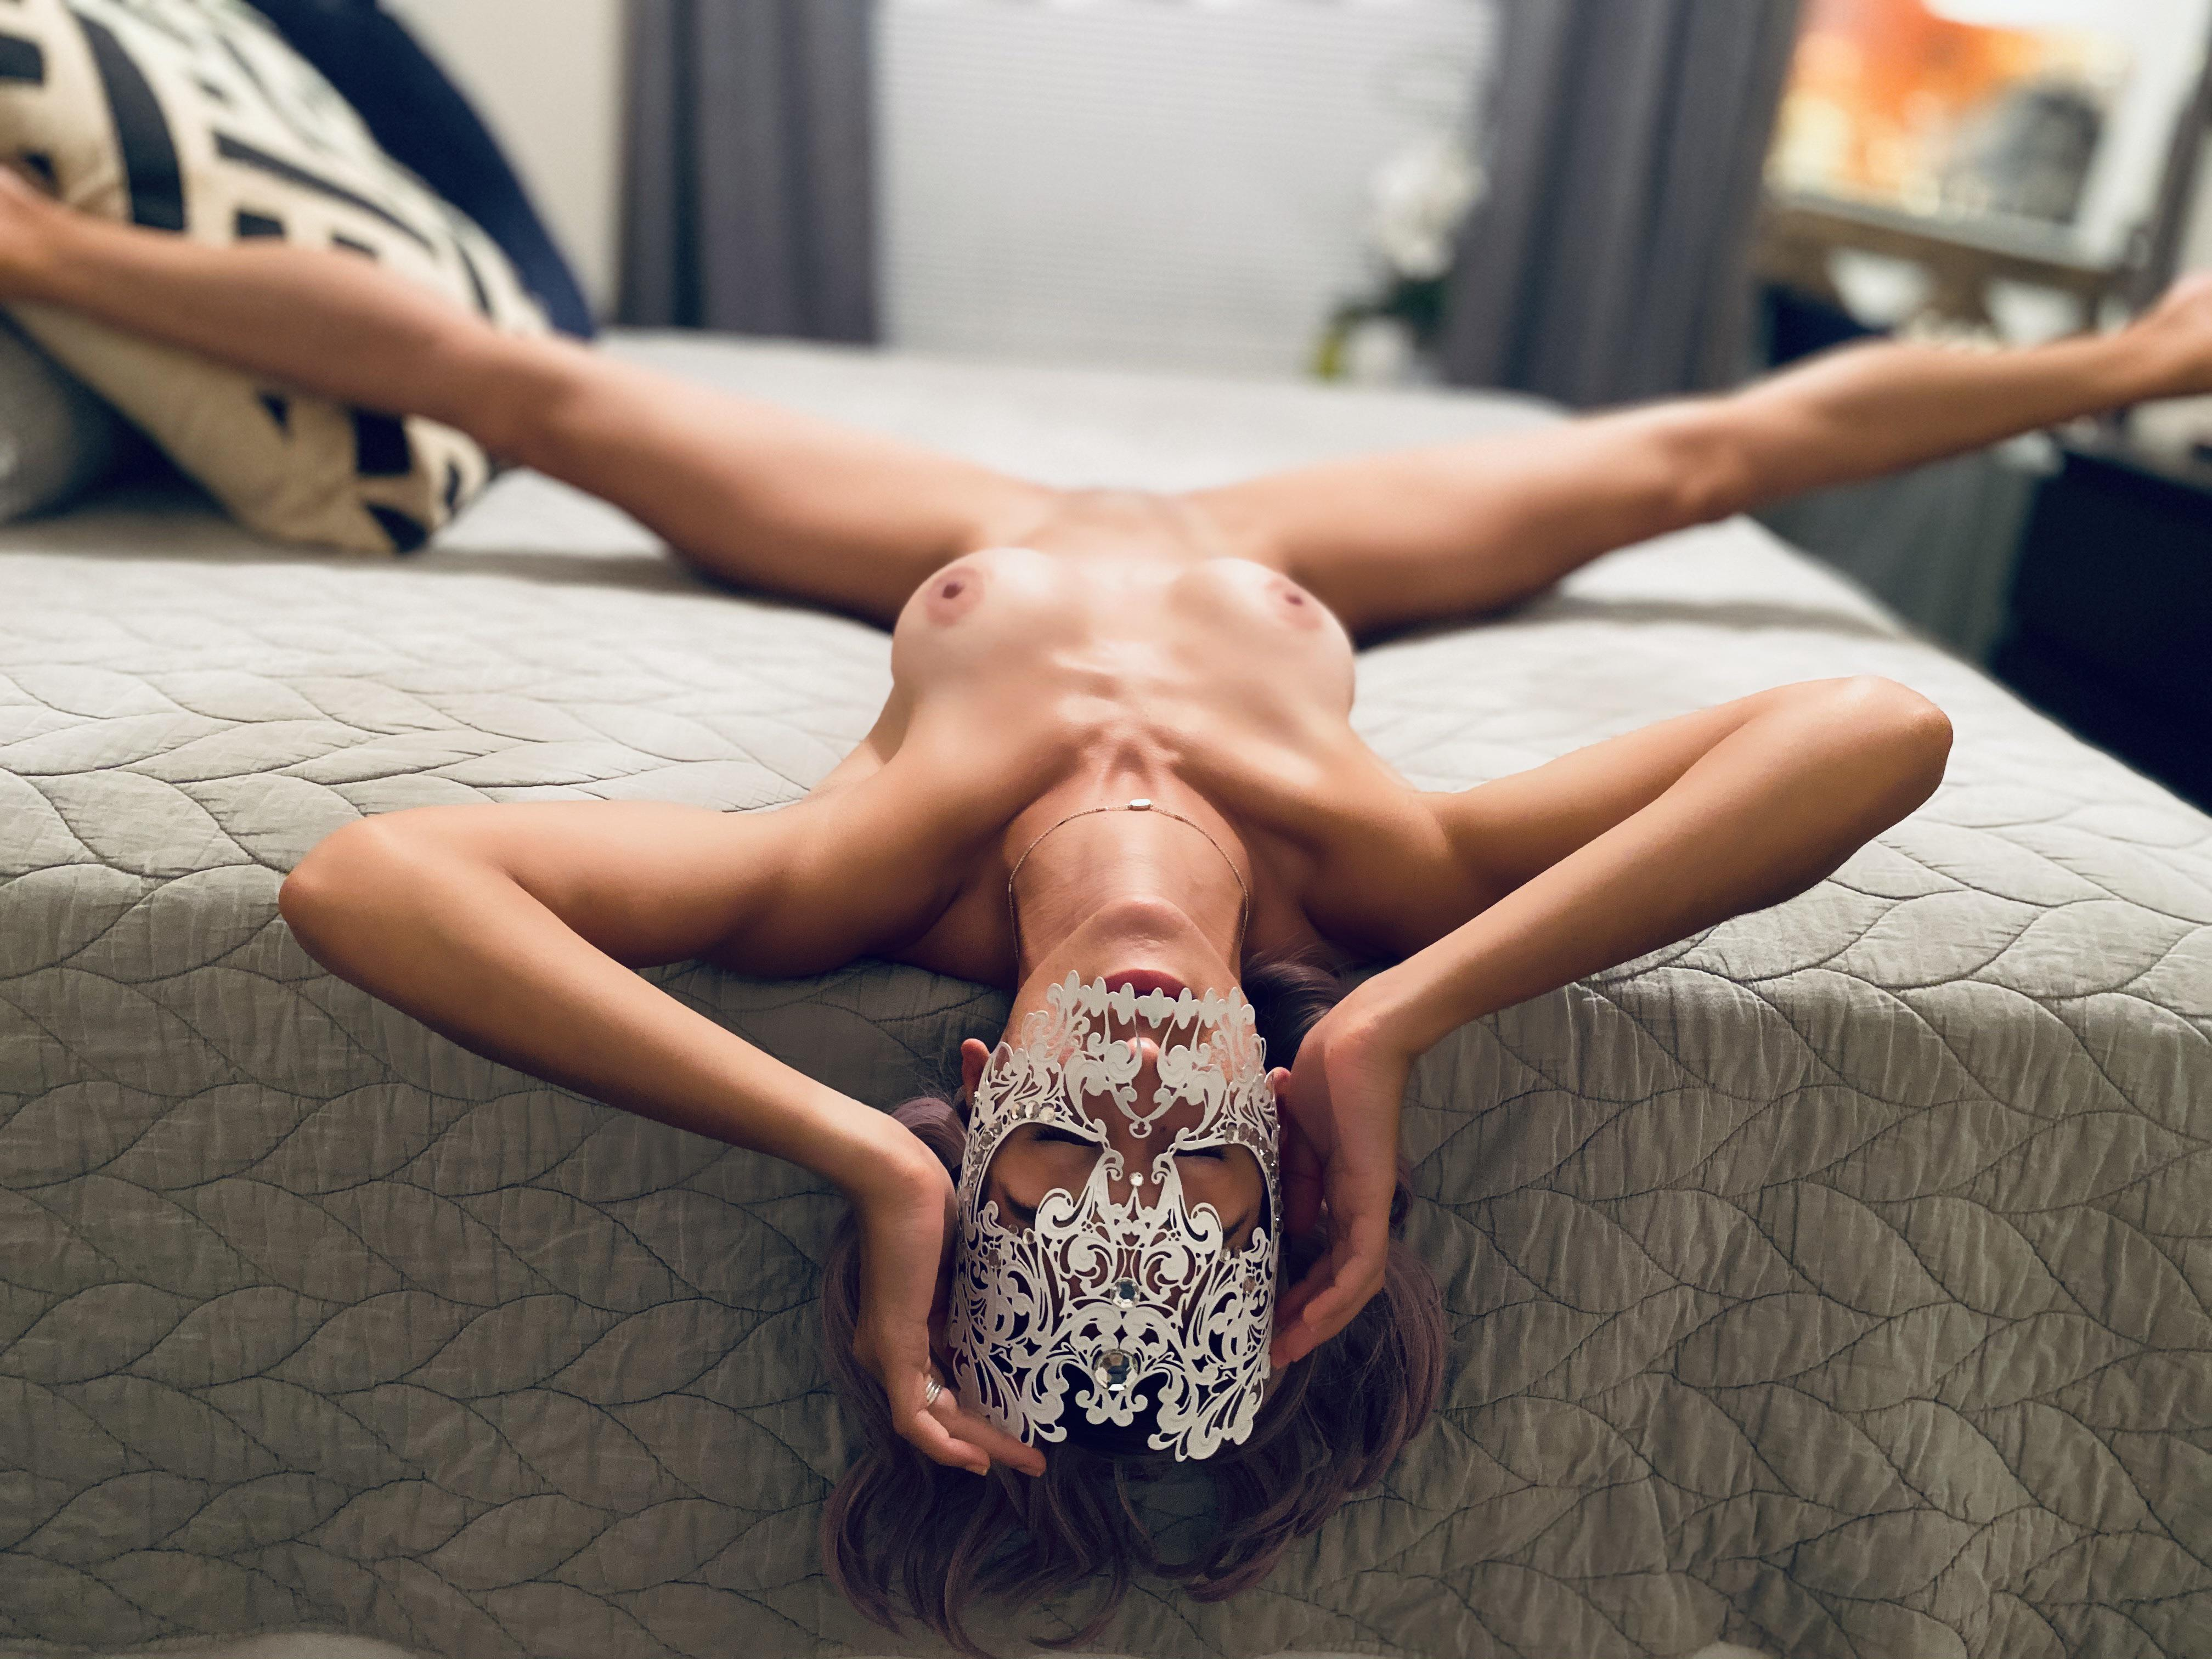 31F Does Your Girl Do This For You?